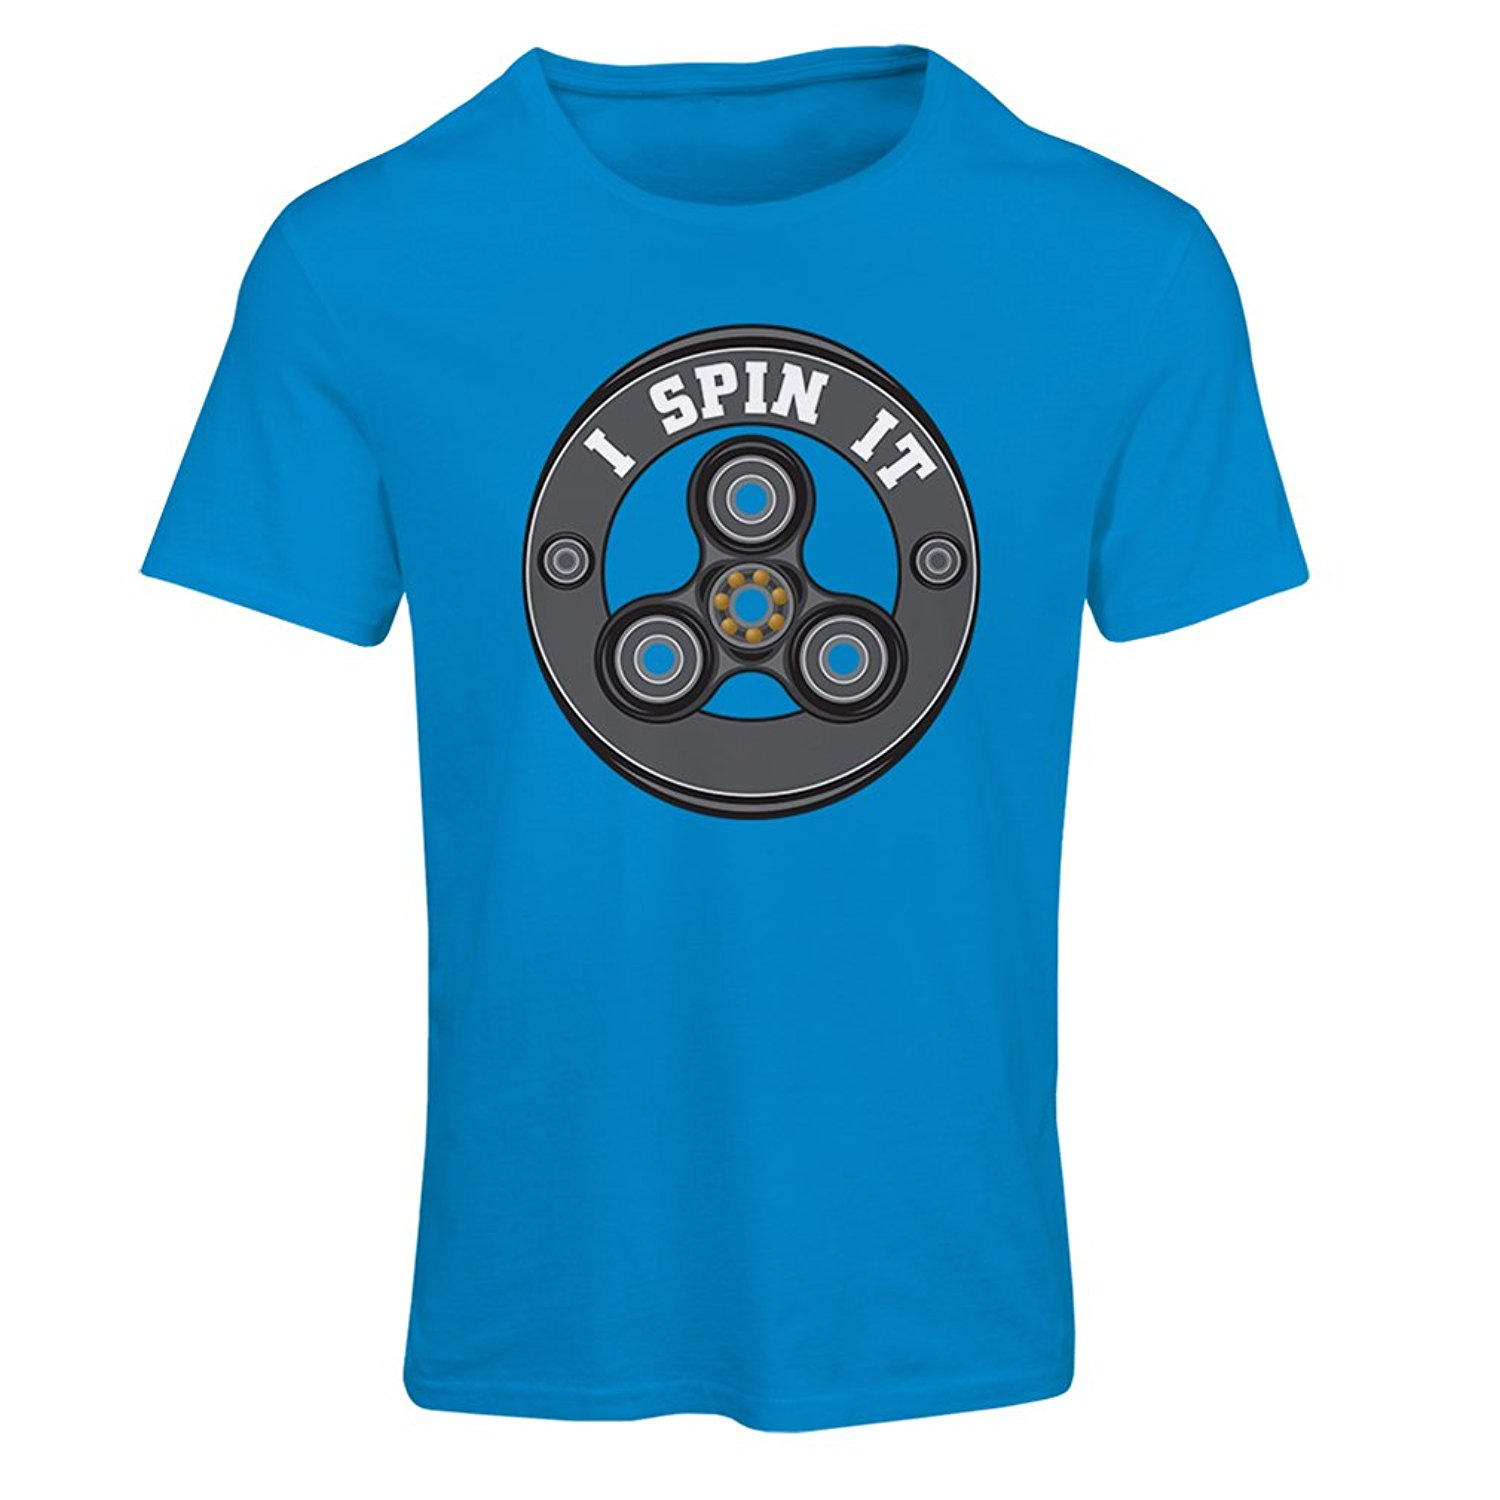 Gildan T shirts for men I Spin it - cool gadgets enthusiast - Fidget Hand Spinner Toy ED ...